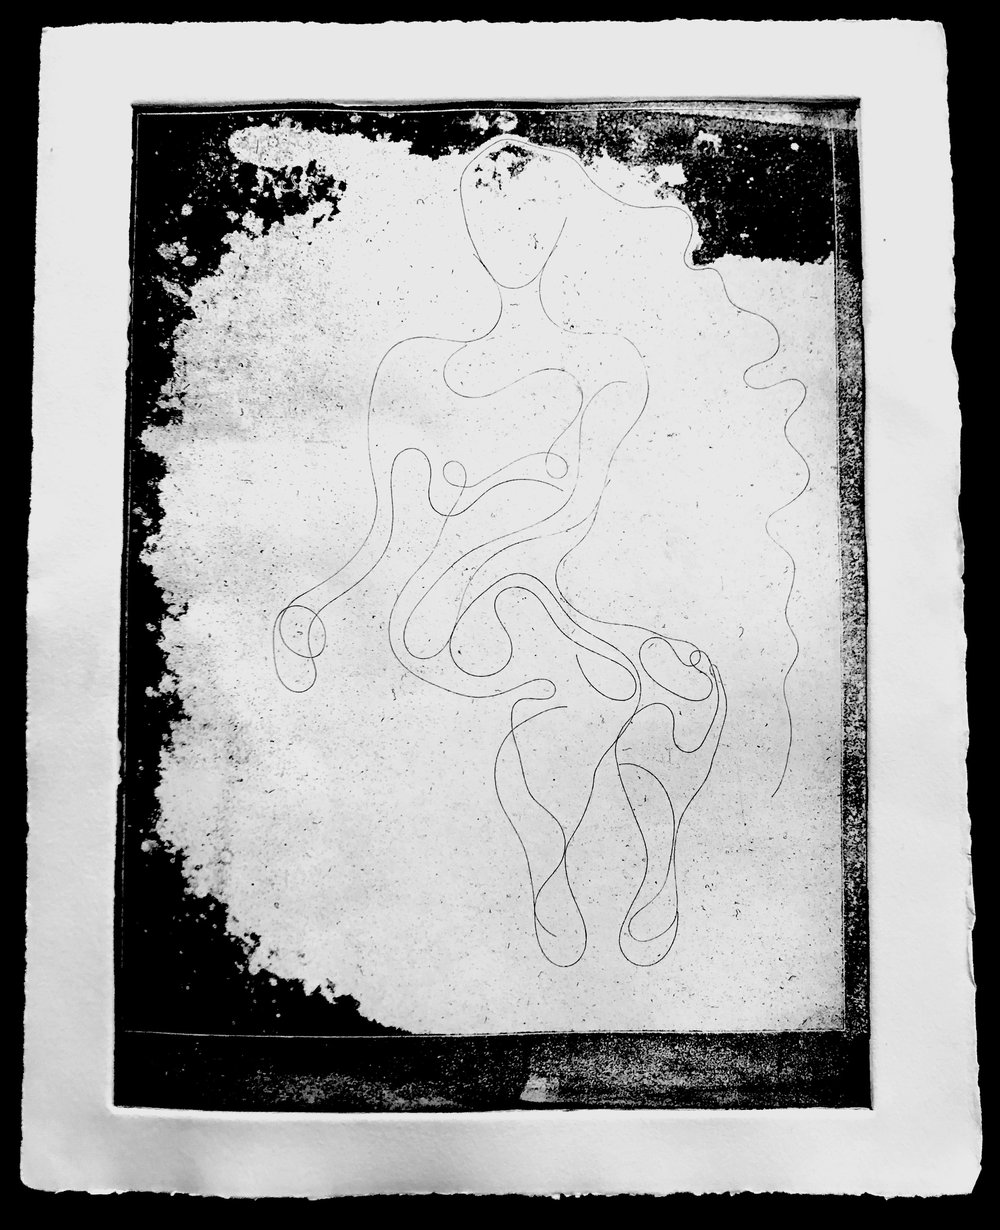 Stretching Myself, Ink intaglio print on cotton rag paper made from soft-ground impression of my hair on acetate and chance procedures, 14 x 11, 2019